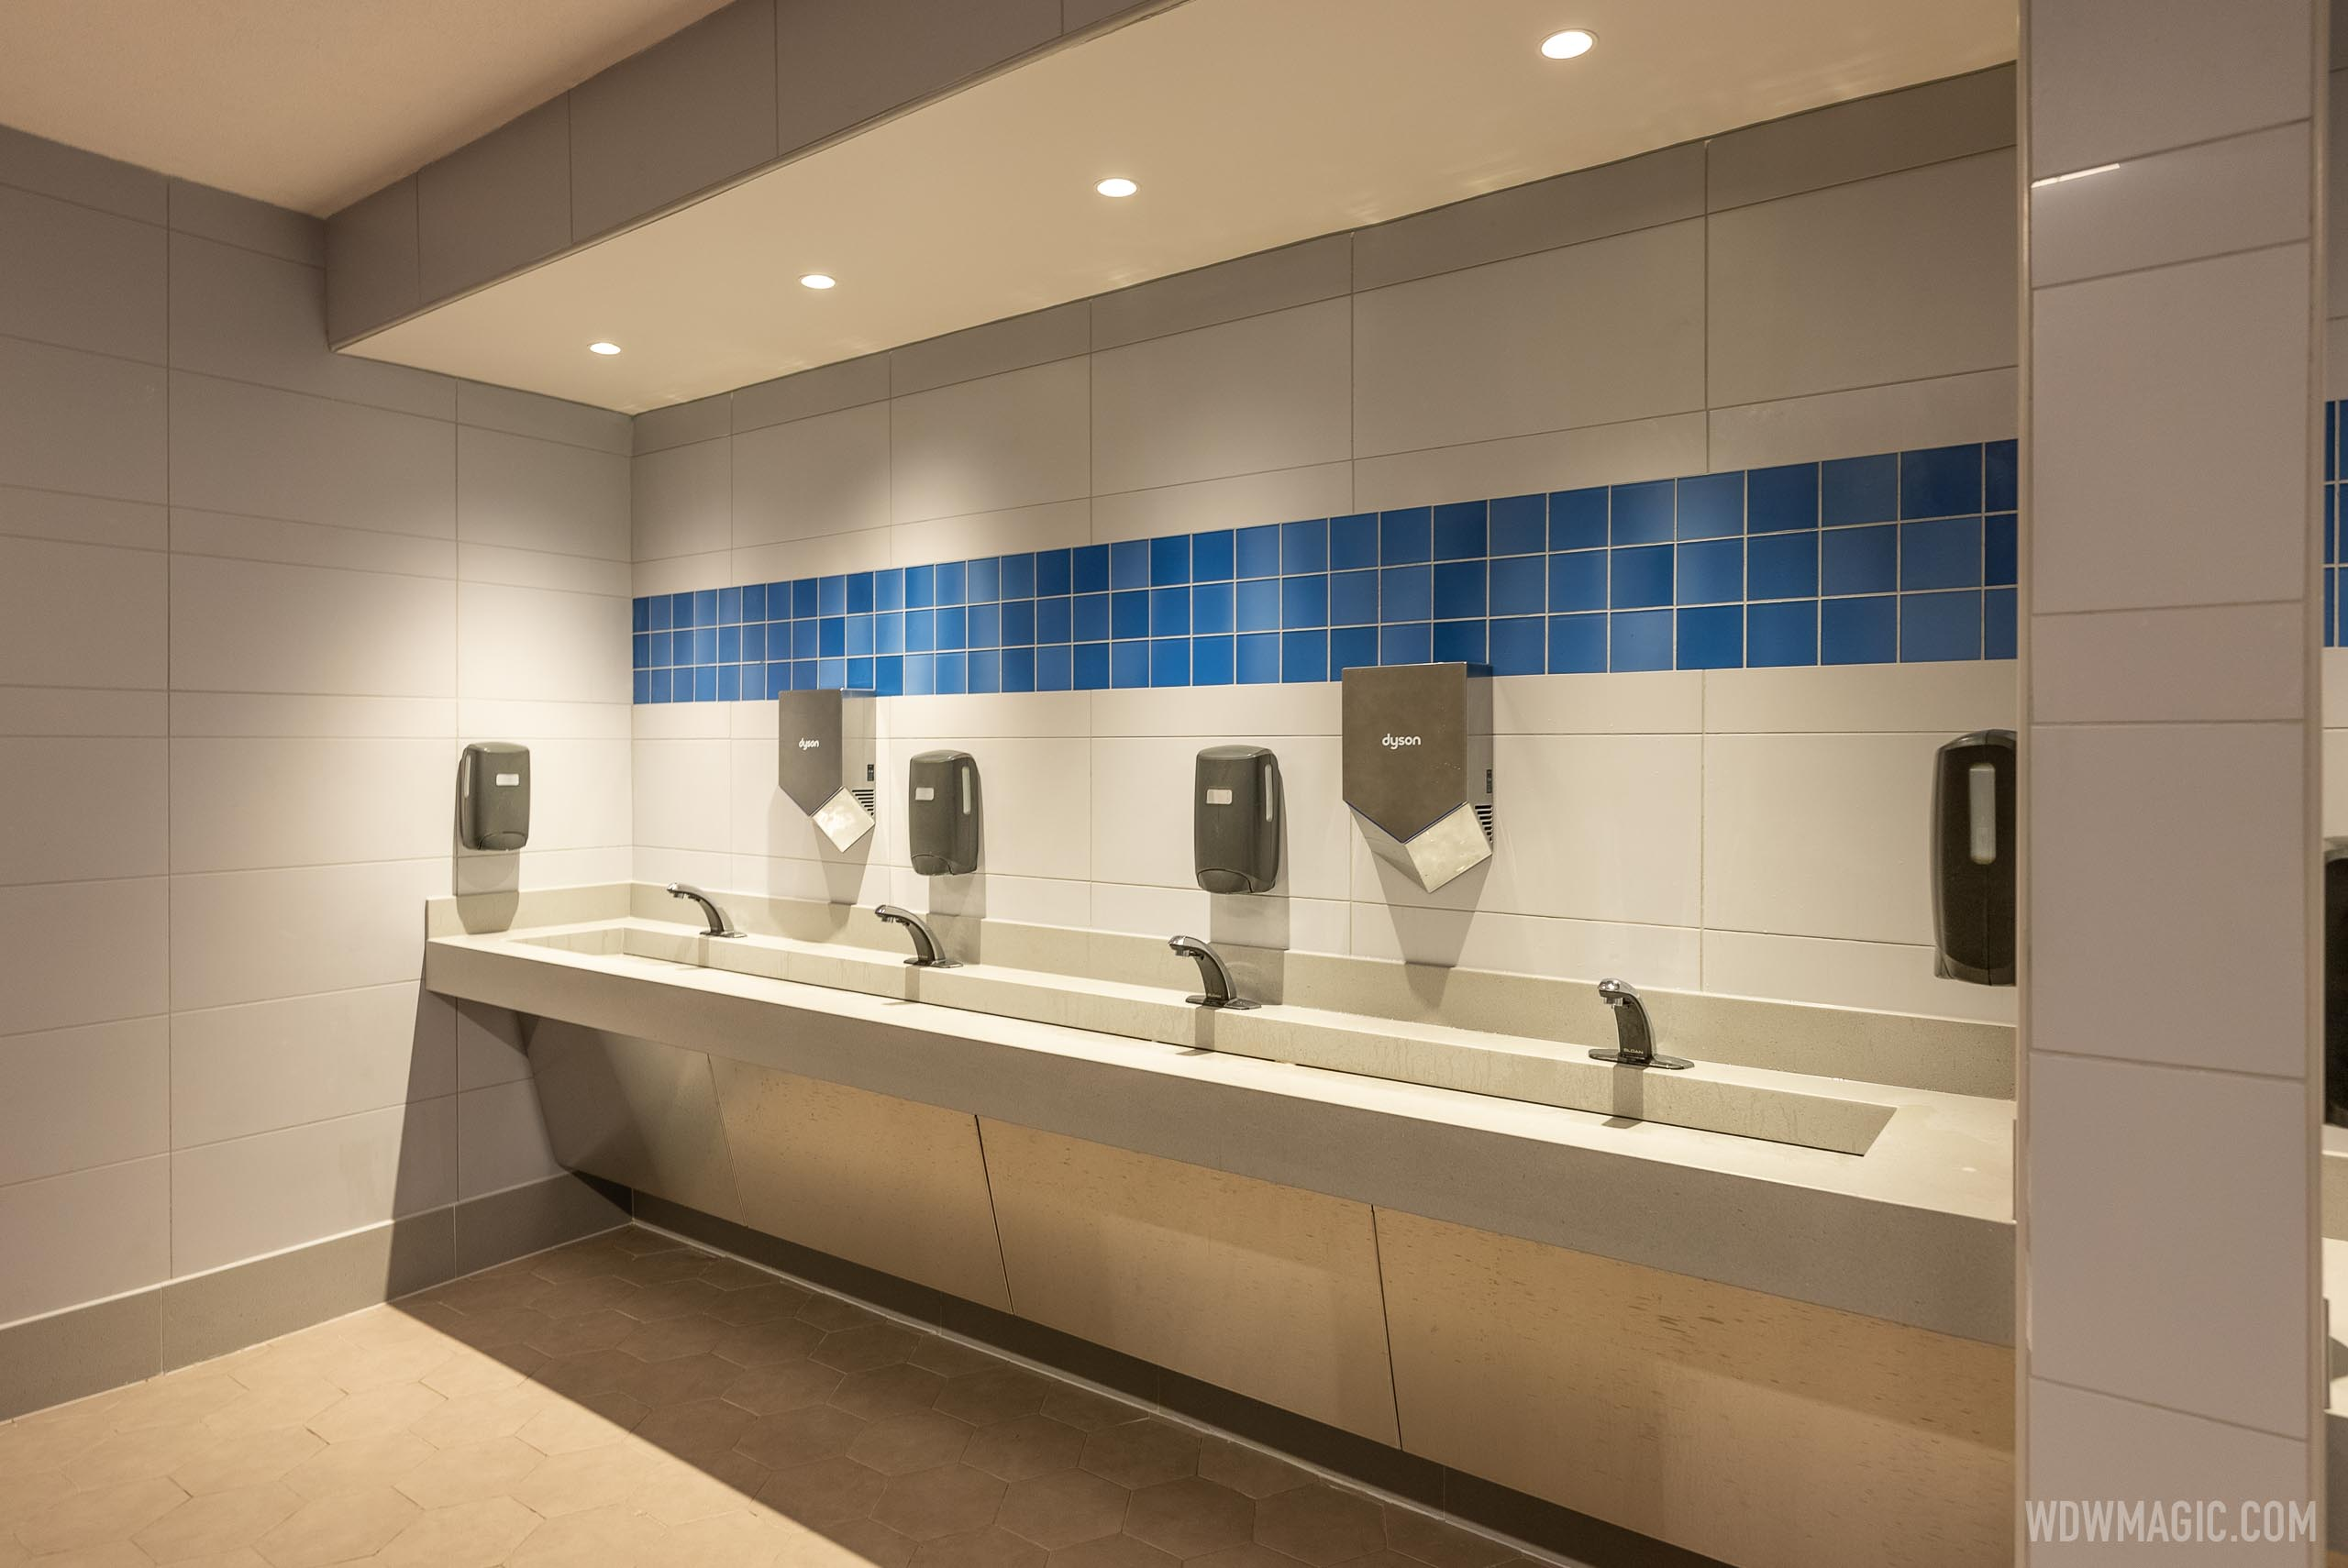 EPCOT Future World East restroom reopening - November 26 2020